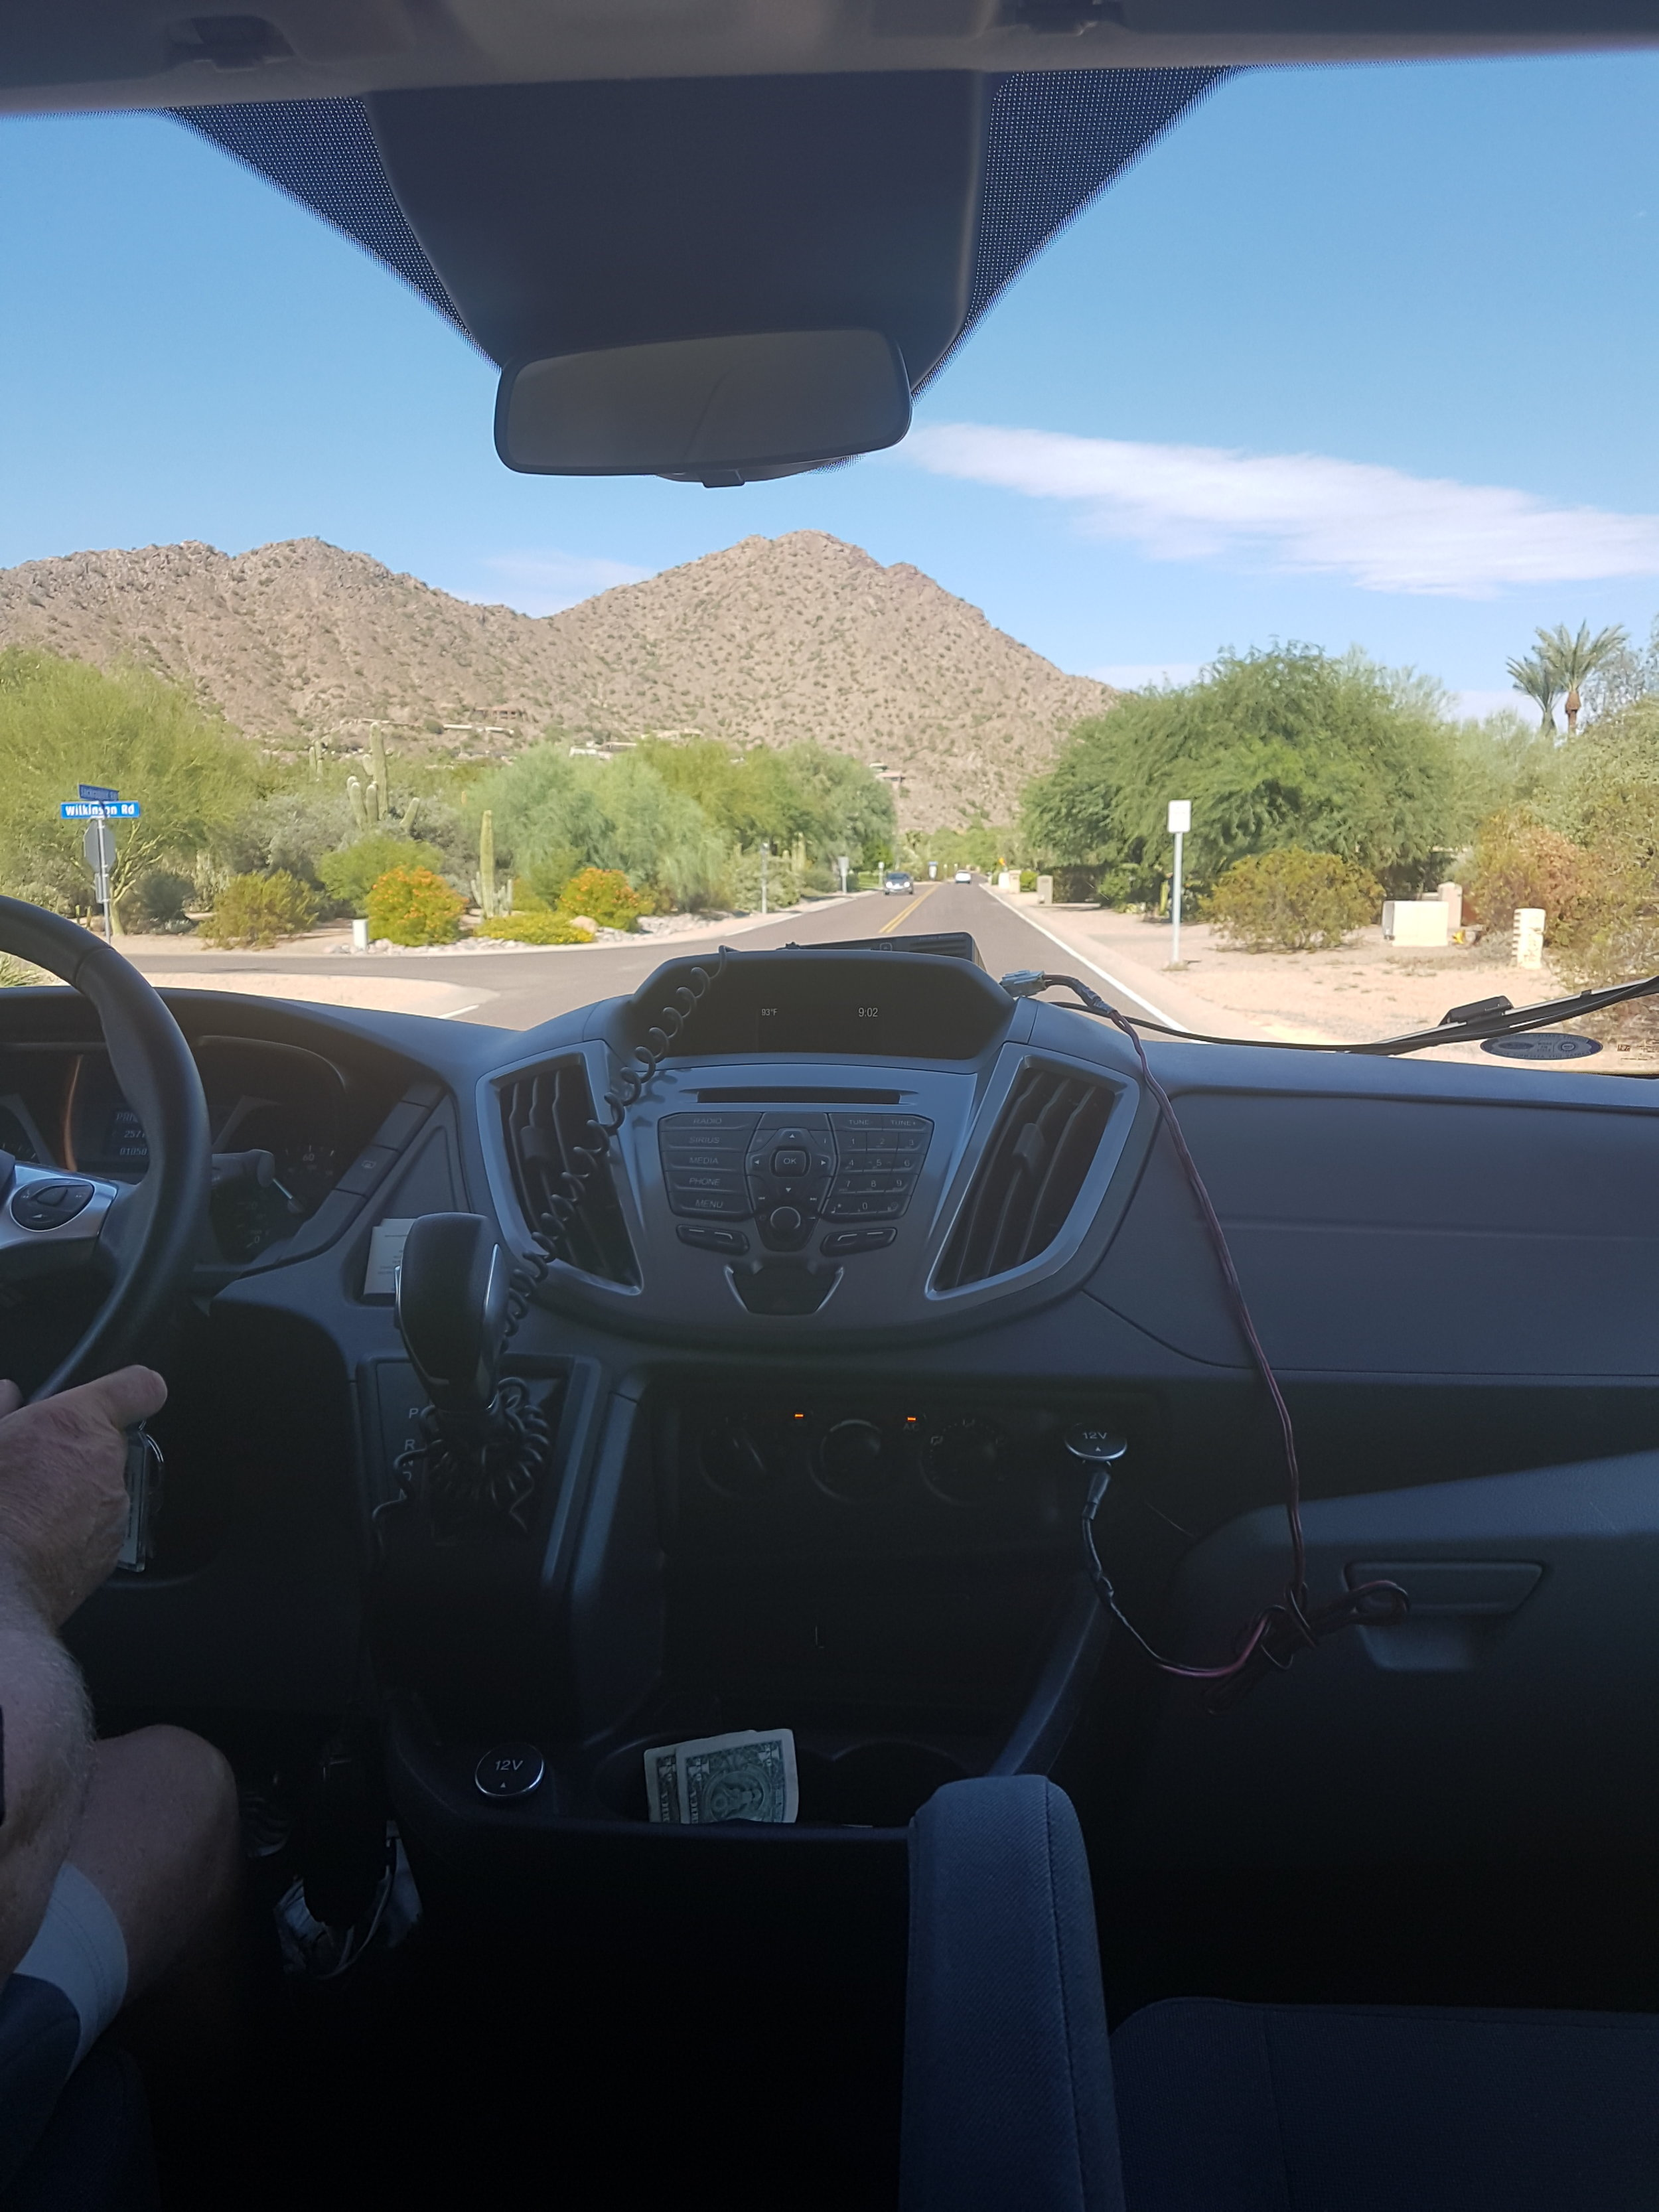 In my shuttle, on my way to Camelback Mountain